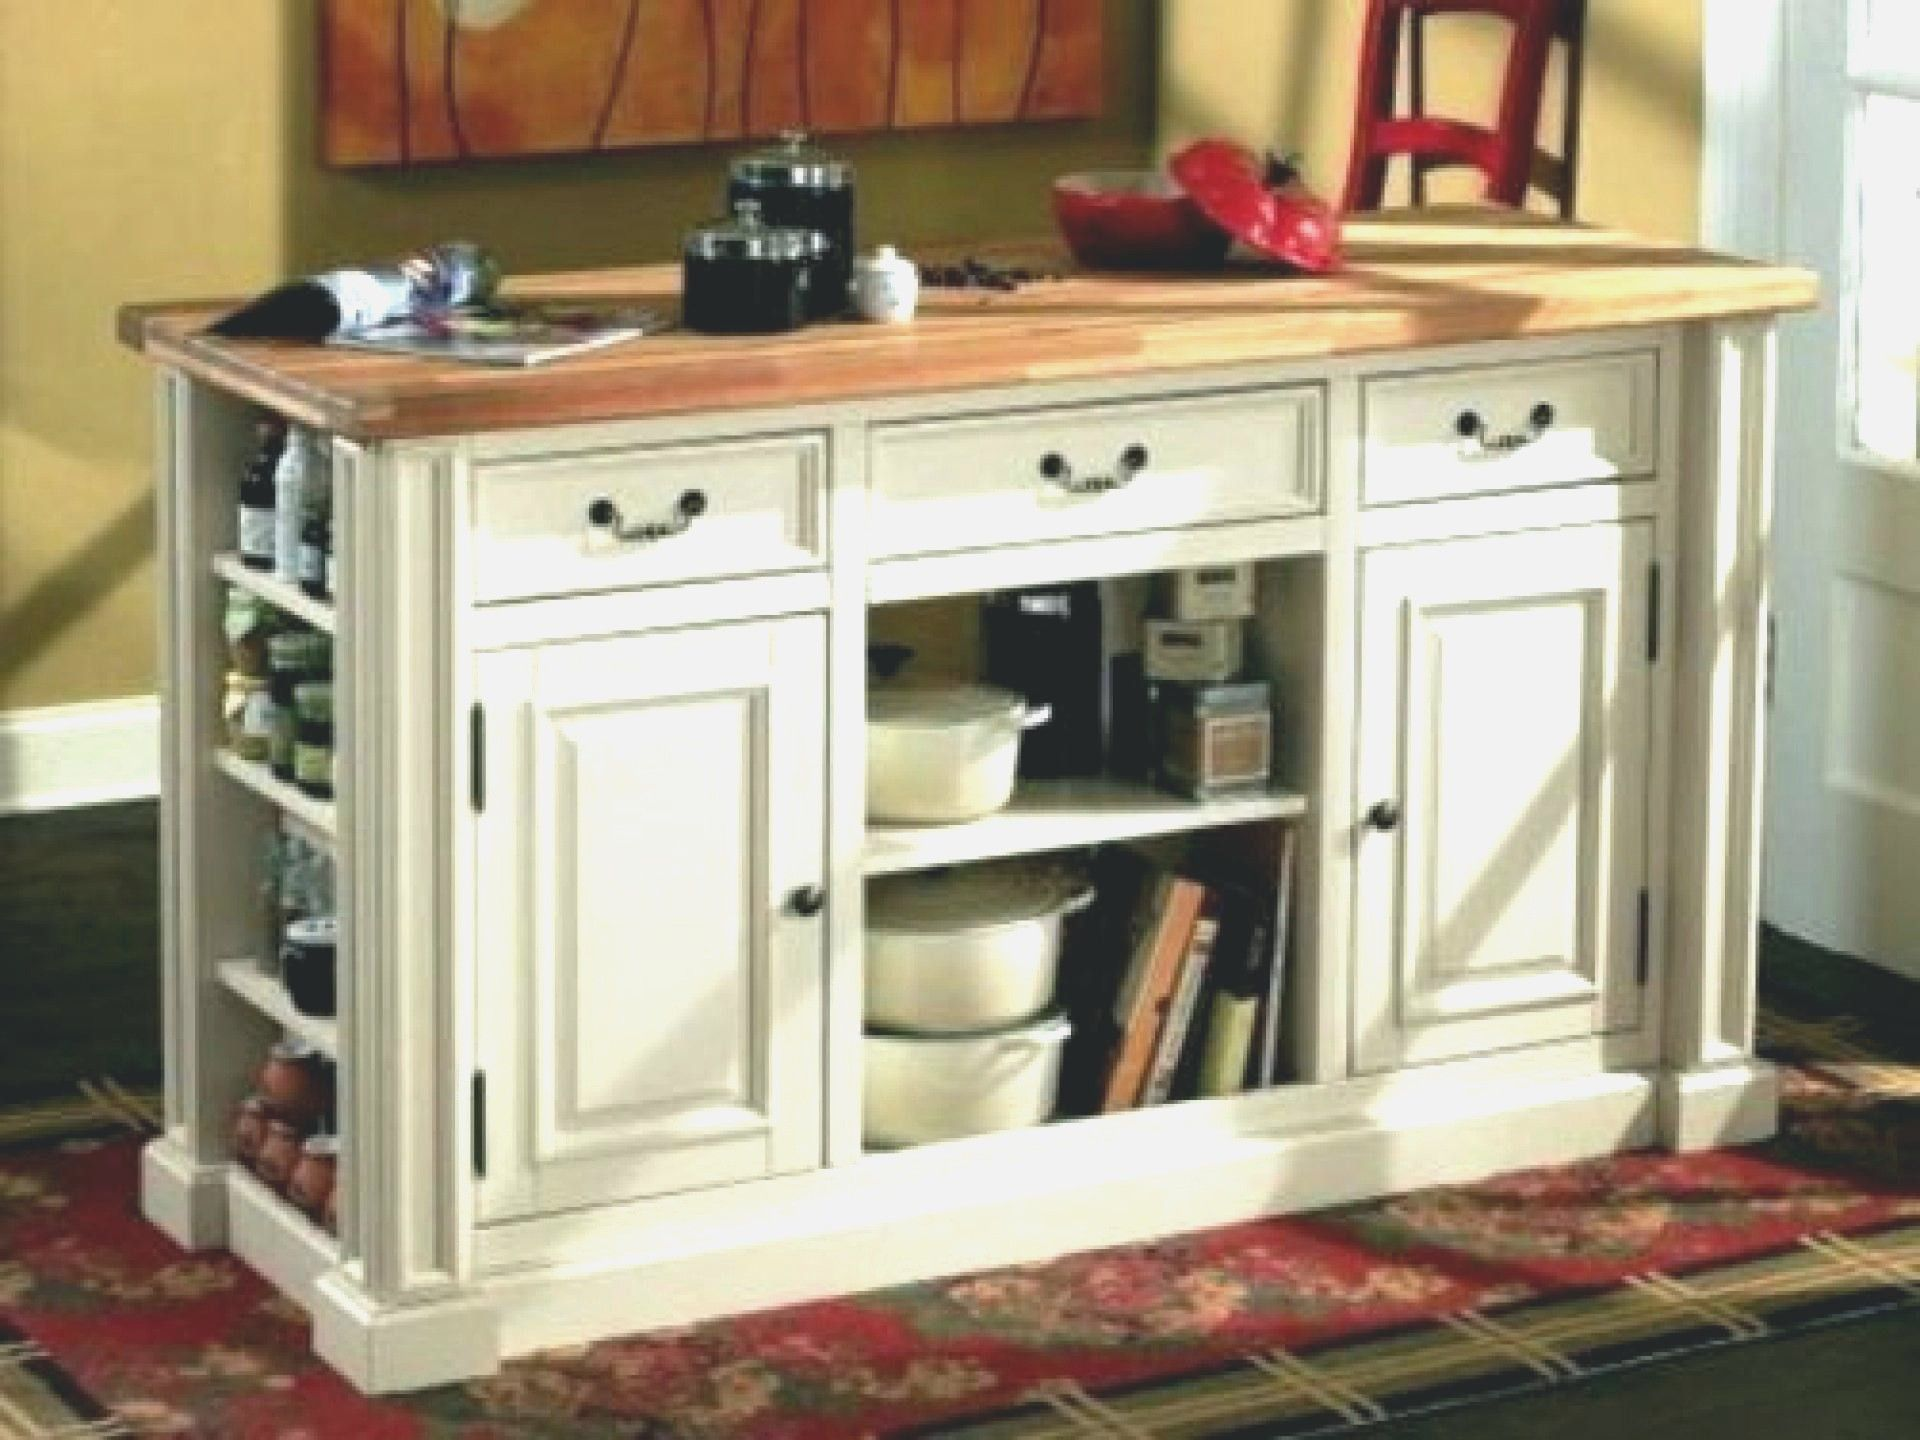 Kitchen Storage Cabinets with Doors - kitchen stor, kitchen storage ...